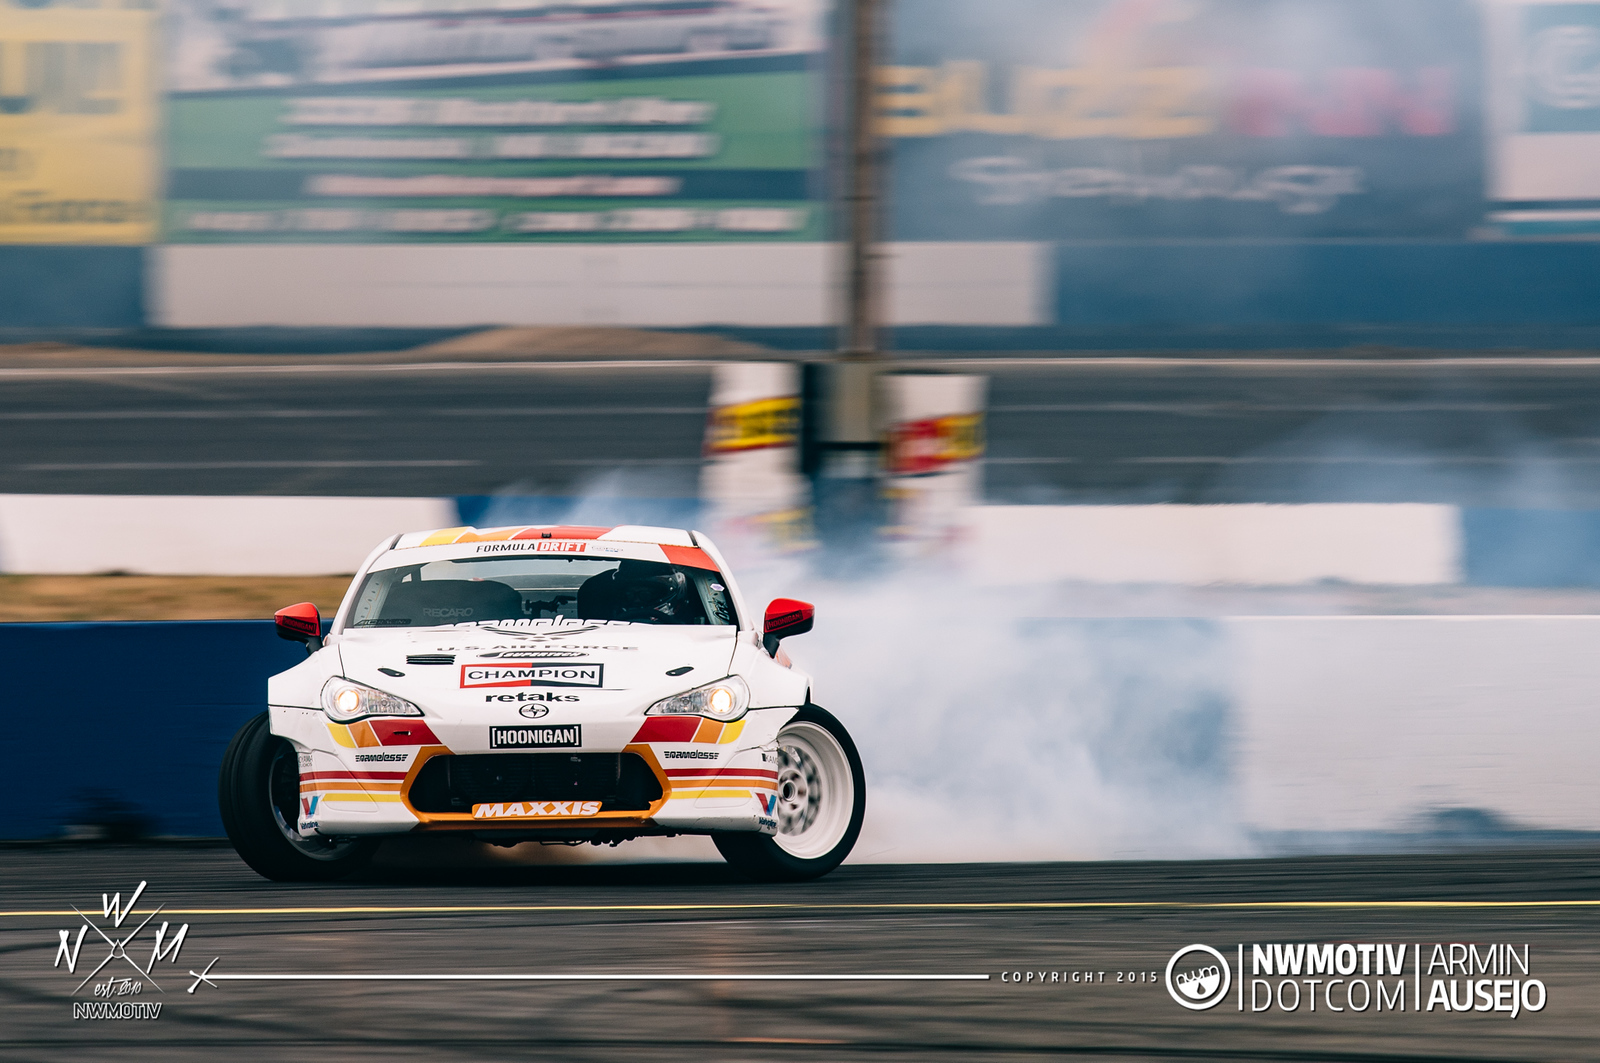 Ryan Tuerck at full lock through the power alley